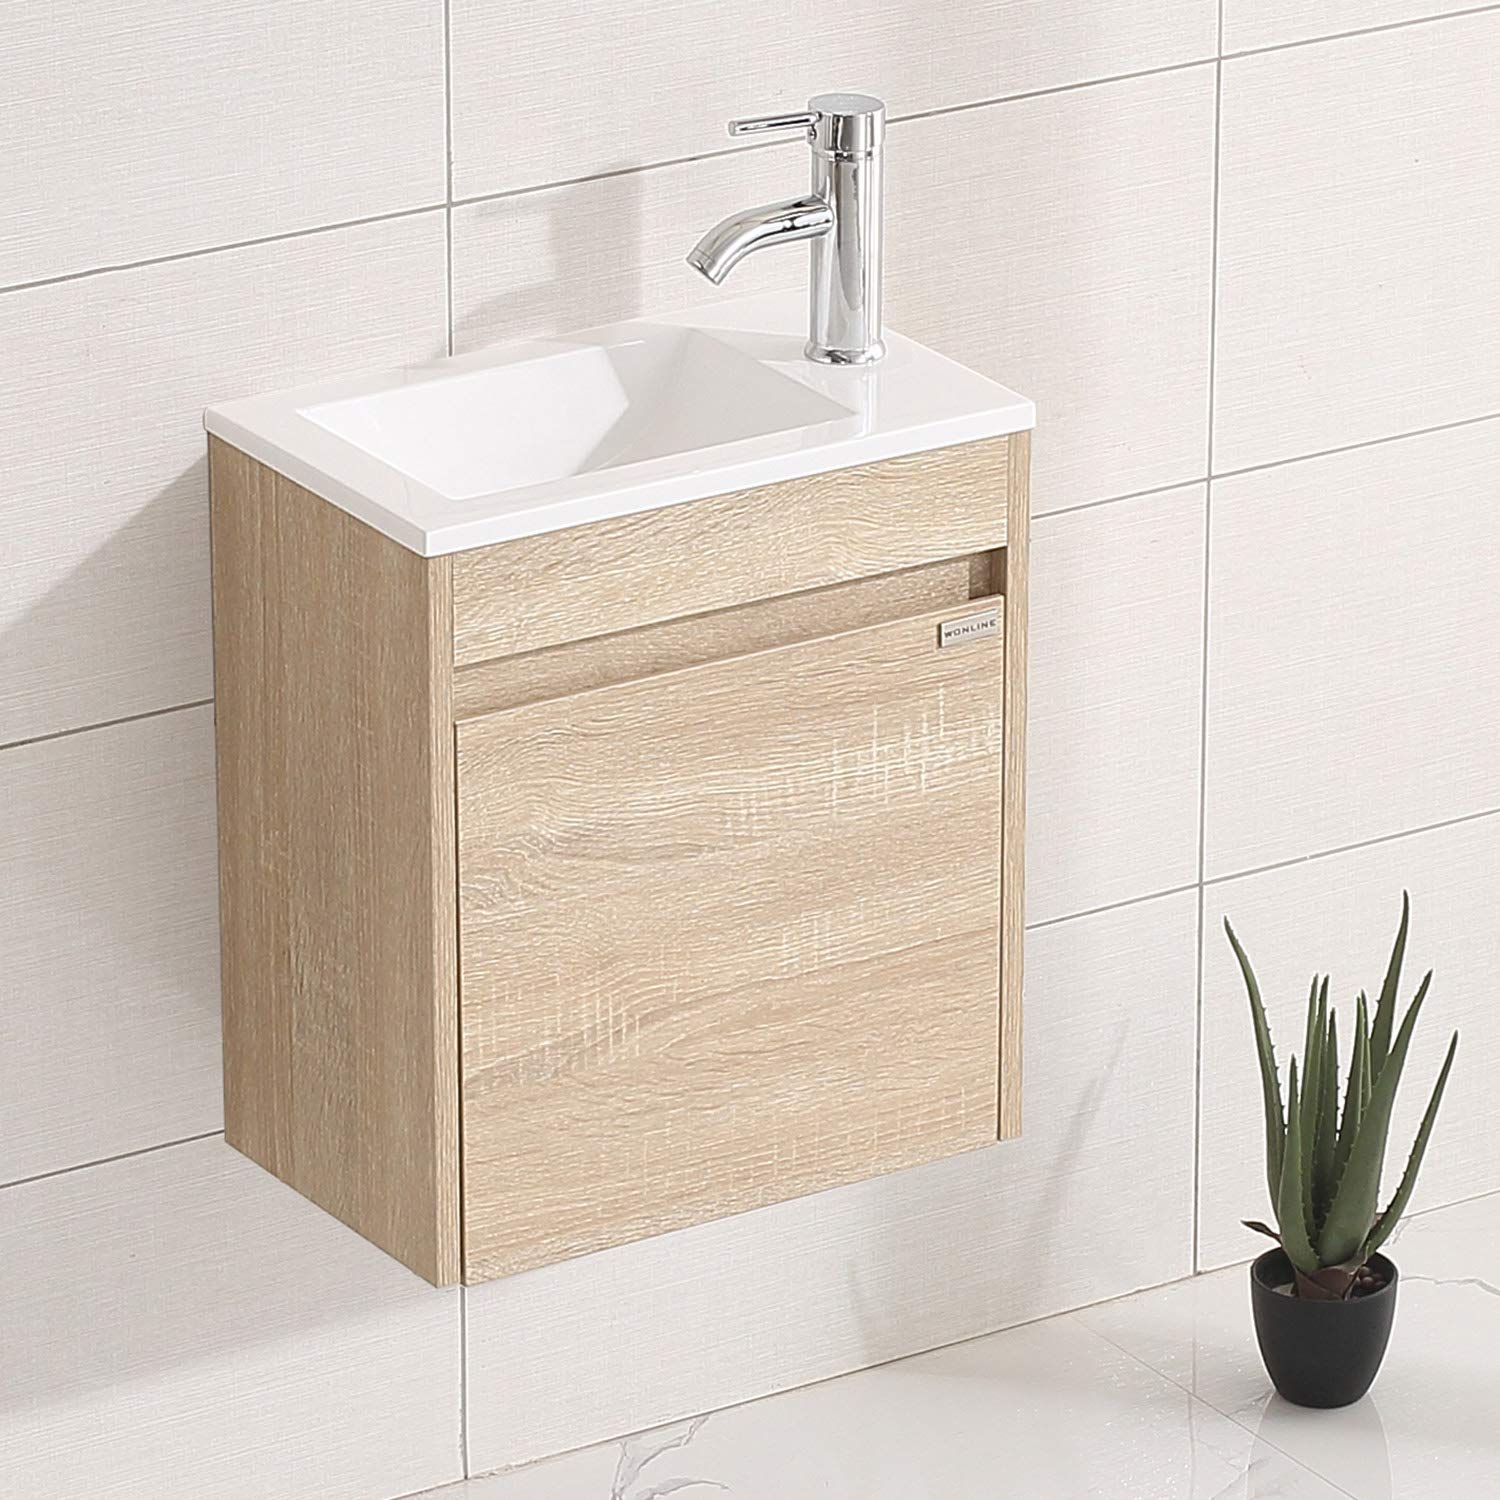 WONLINE 15.7 Small Bathroom Vanity Set Wall Mounted Fully Assembled Cabinet with Sink for Small Space Combo Chrome Faucet